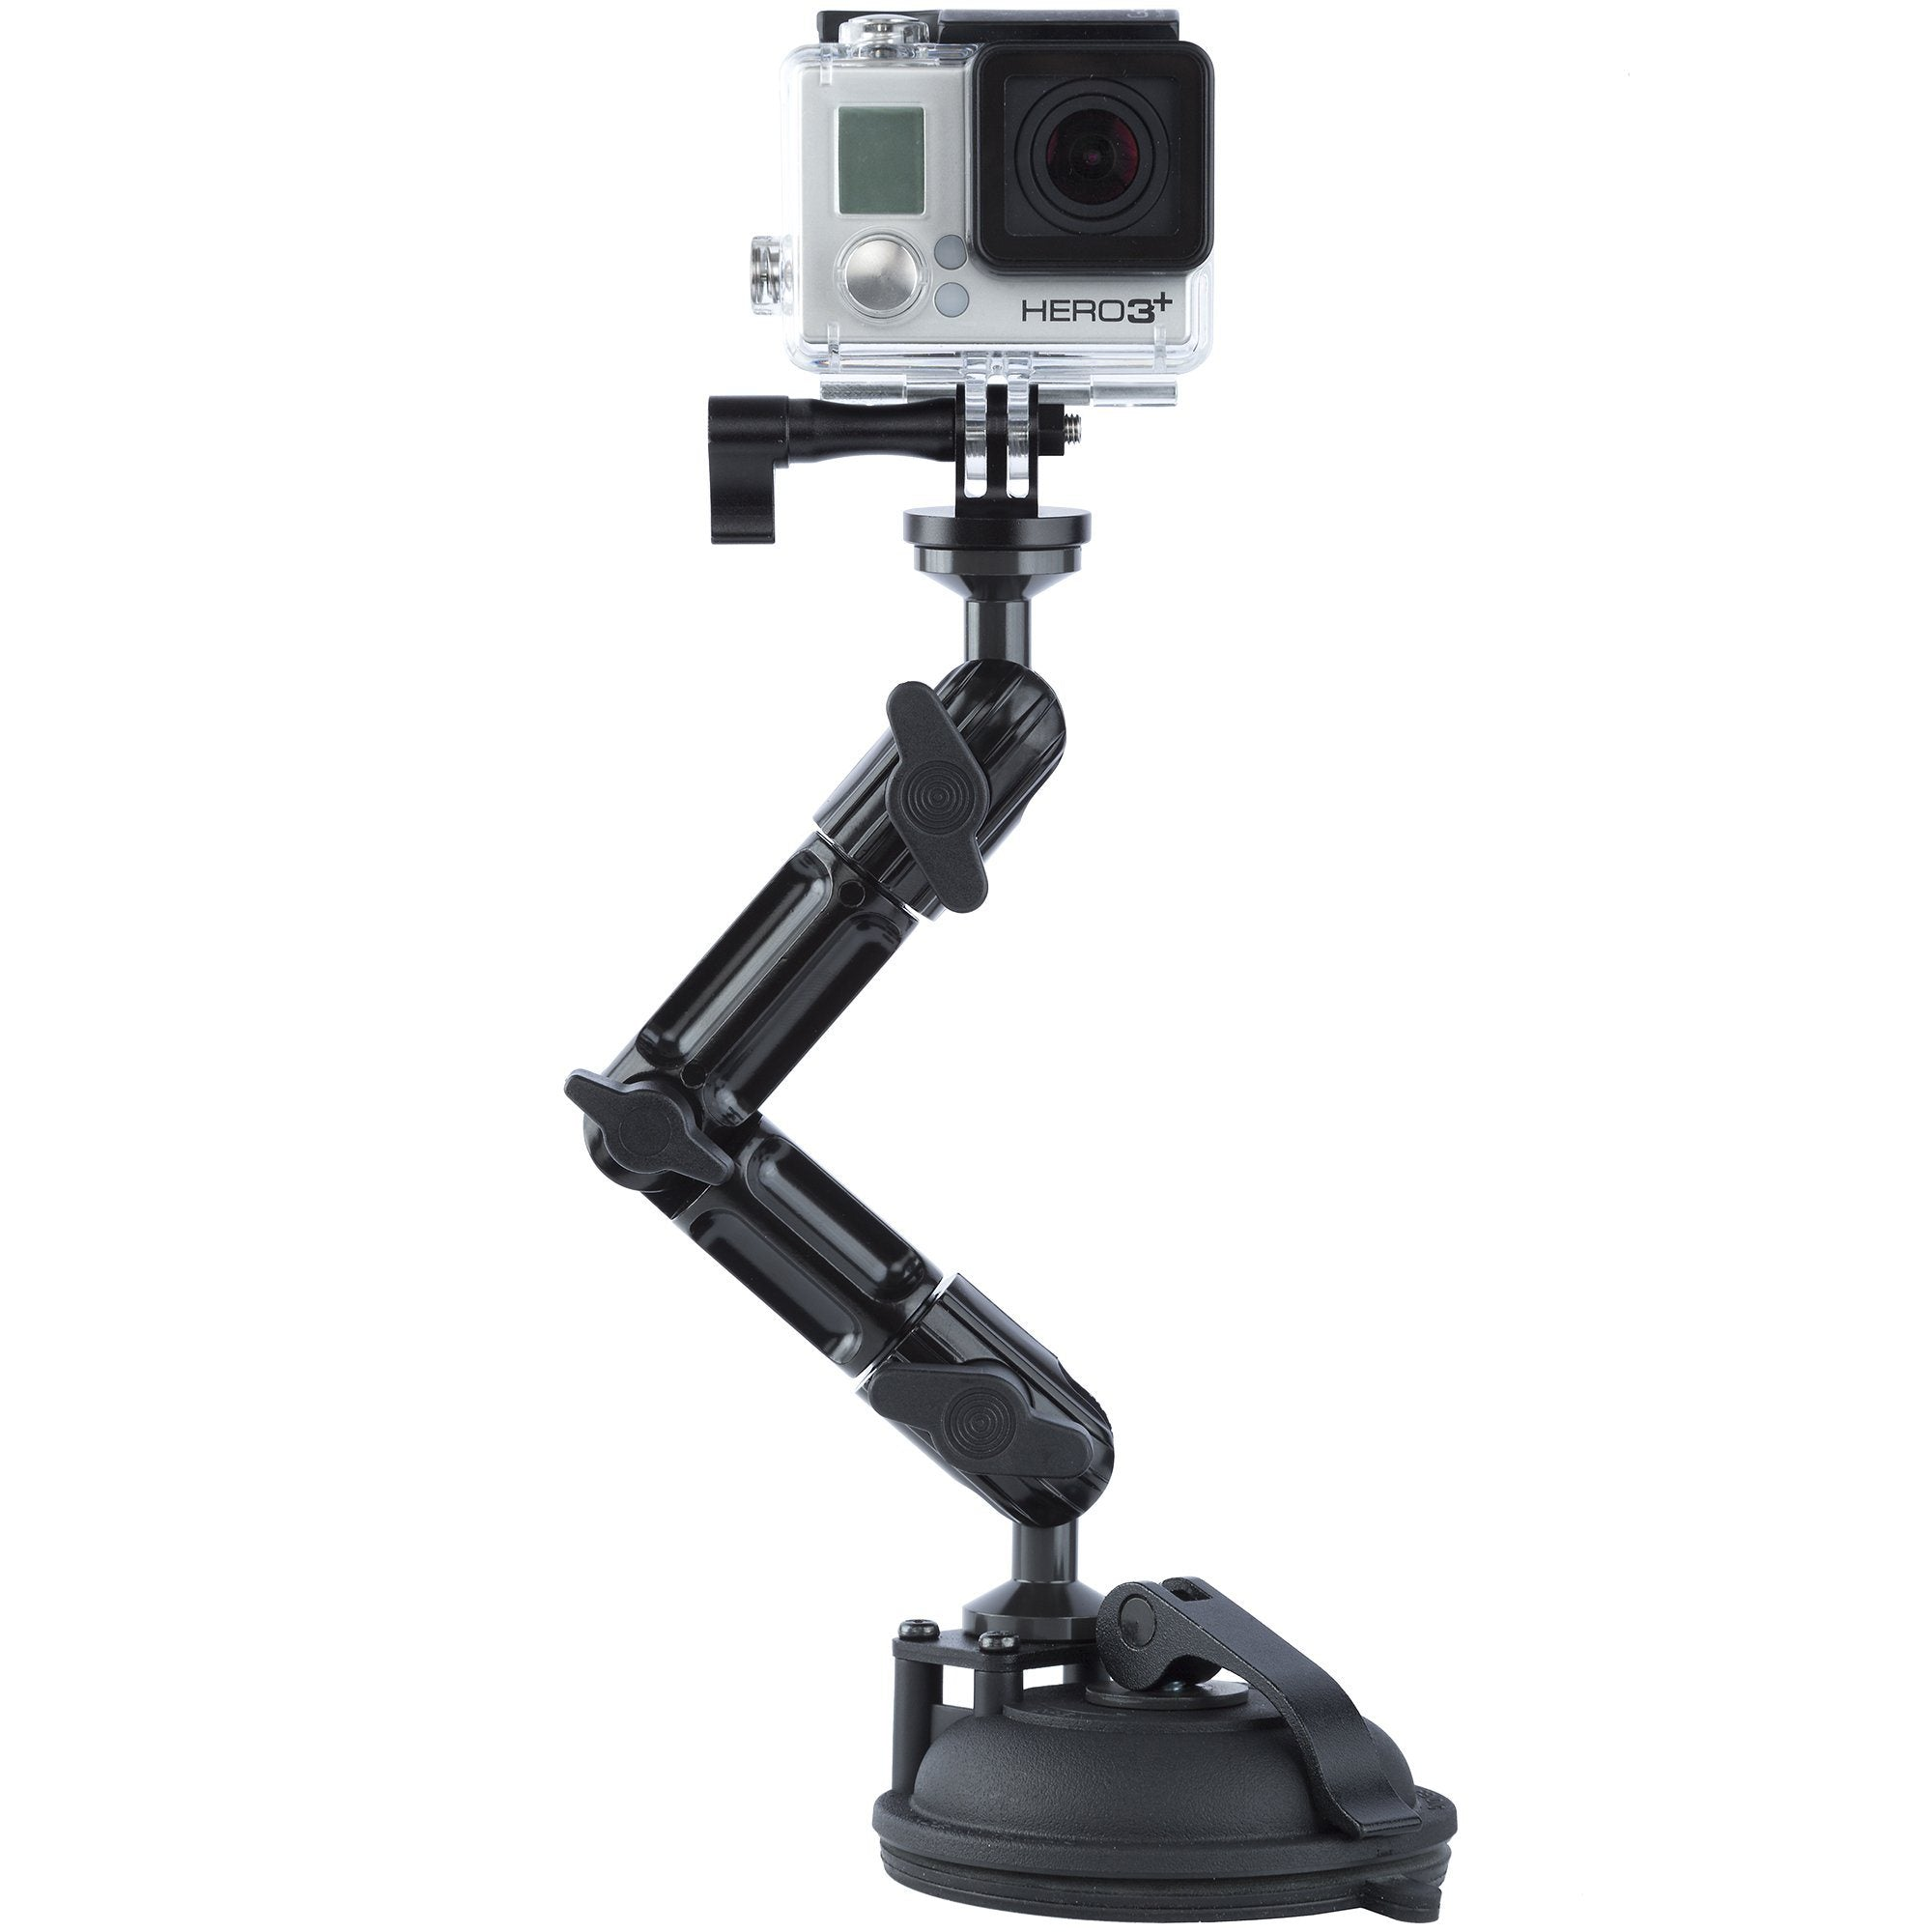 Suction Cup Mount for GoPro and Action Cameras Car Mount